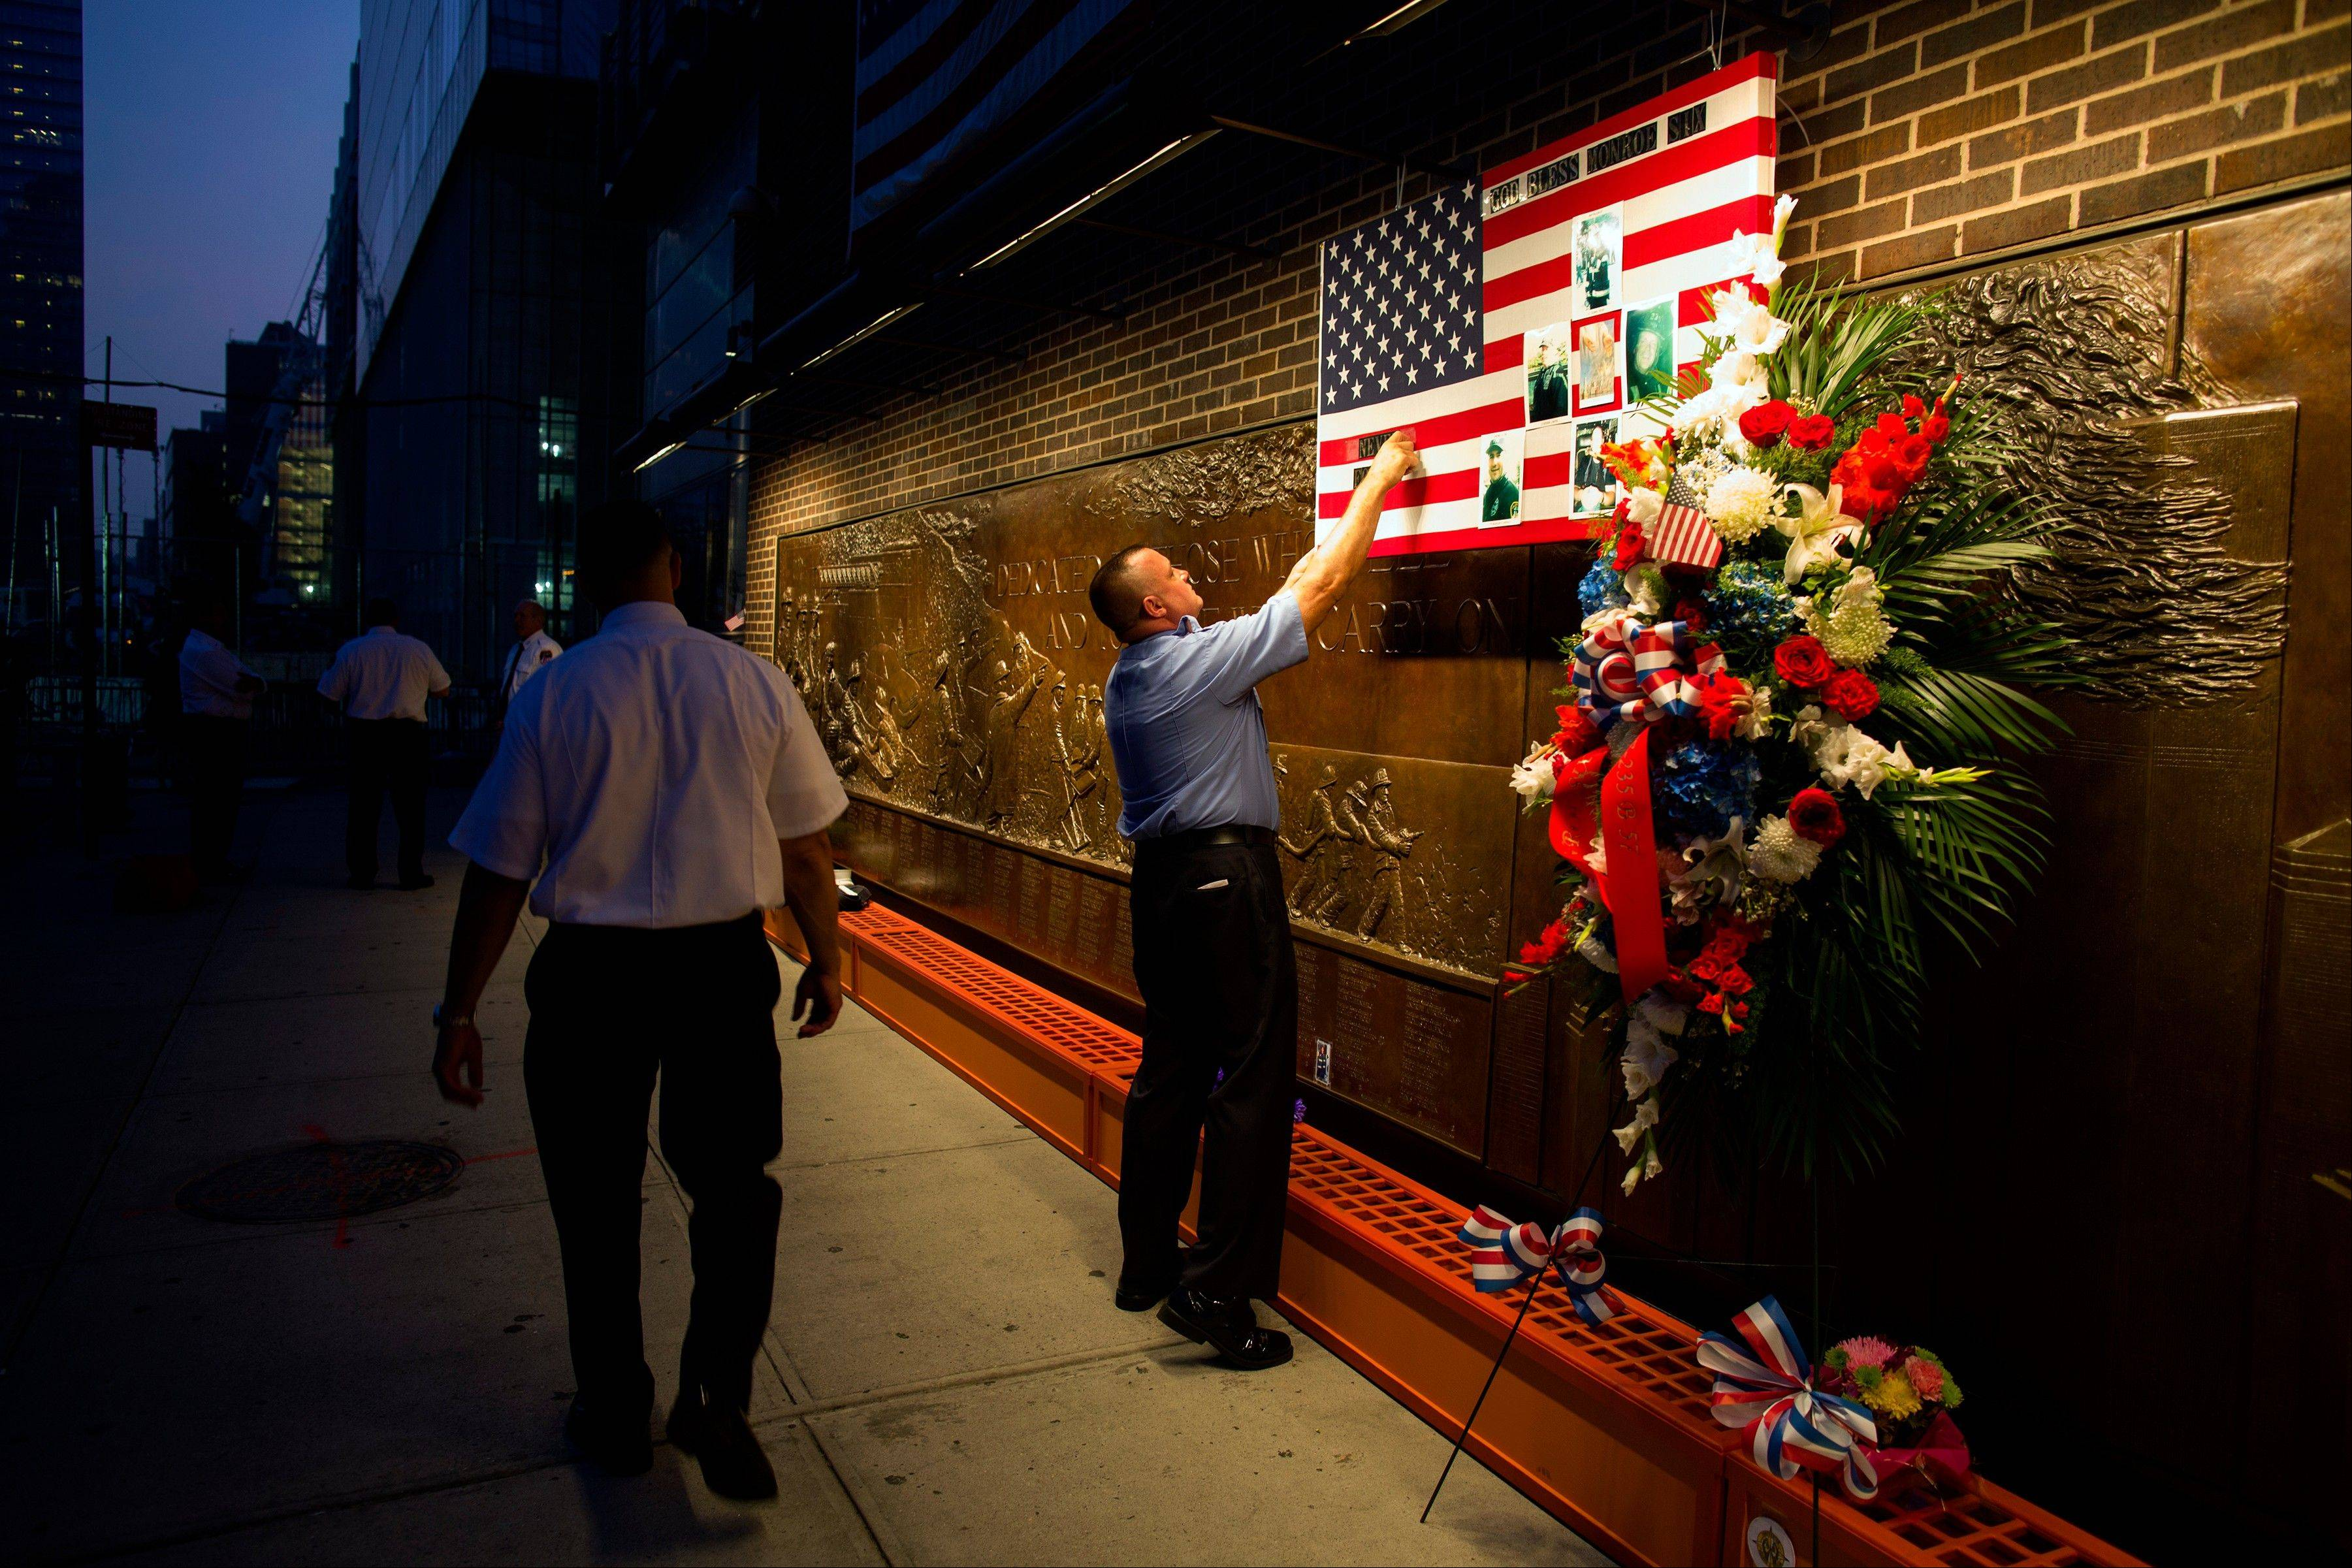 FDNY Firefighter Mike Bellantoni of New York prepares a memento at the Firefighter's Memorial adjacent to the World Trade Center Wednesday, Sept. 11, 2013 before the start of the official ceremonies at the 9/11 Memorial nearby.